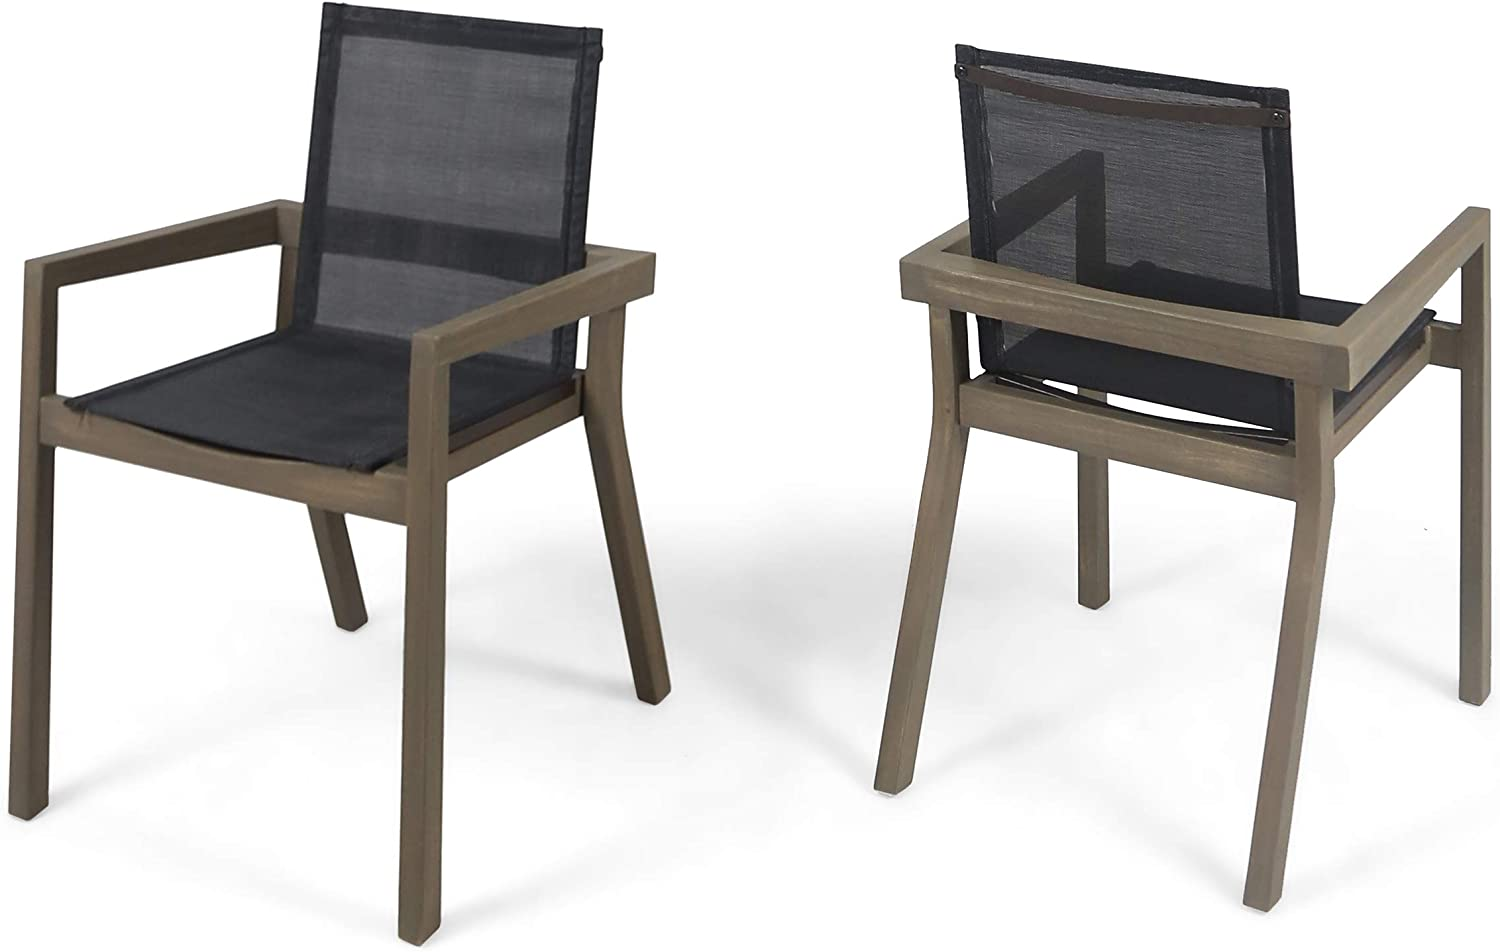 Weekly update Great Deal Furniture Jimmy Outdoor Acacia Dining Max 88% OFF Wood and C Mesh